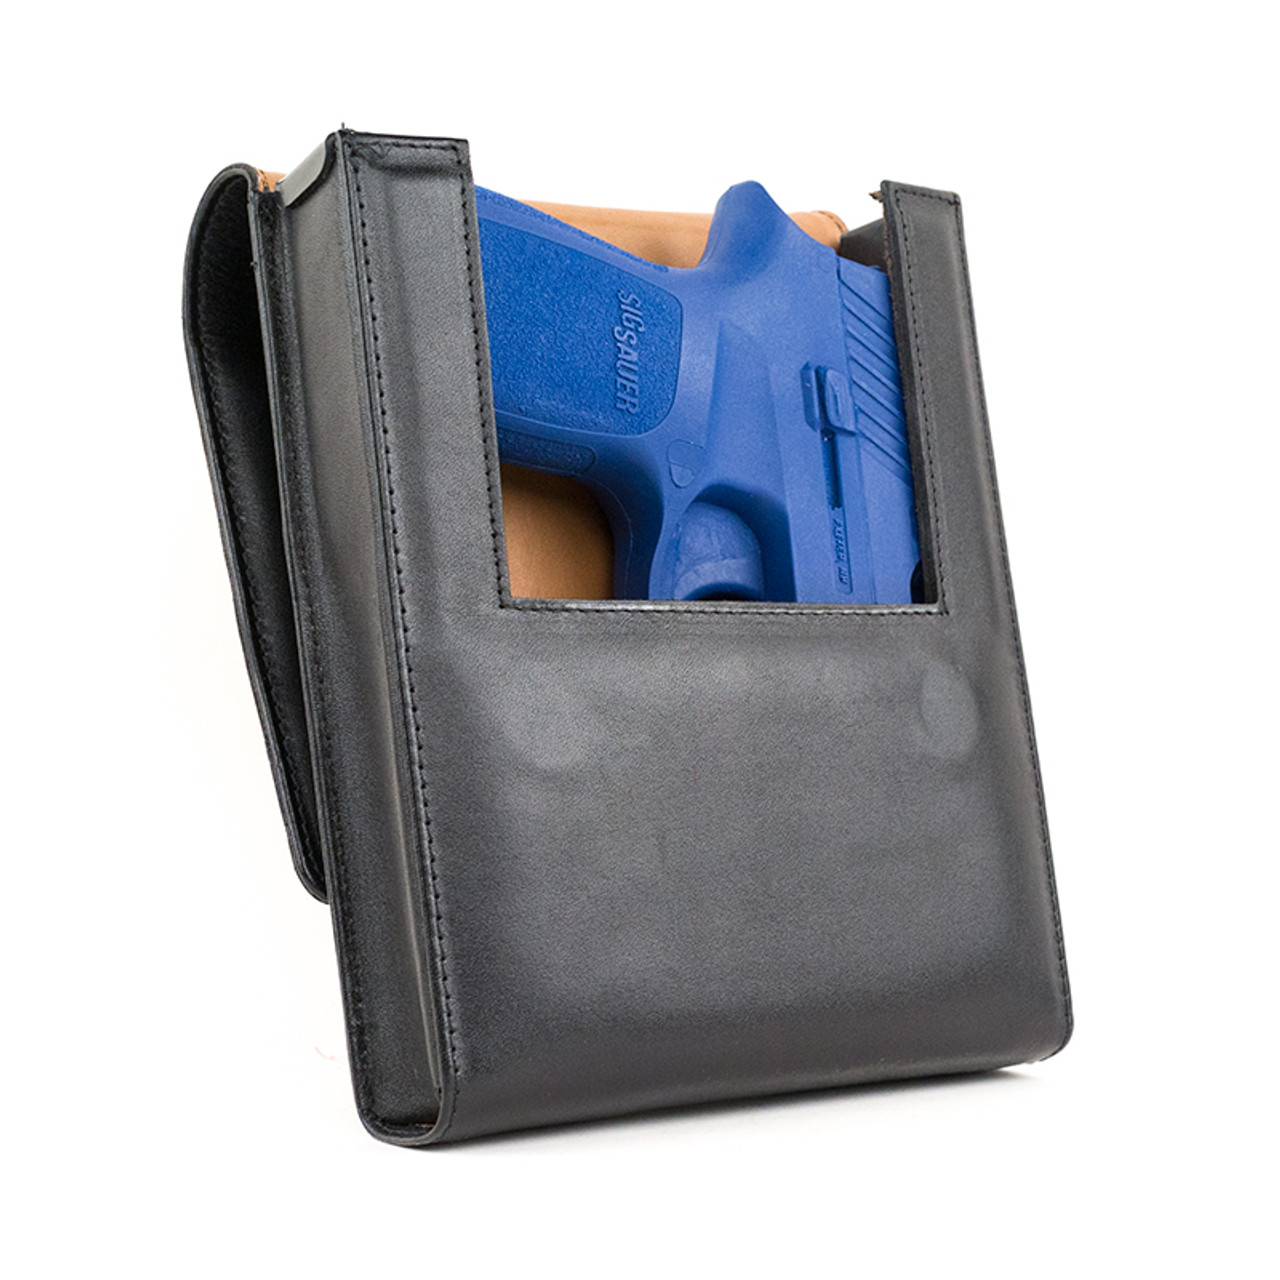 Sig Sauer P320 Compact Concealed Carry Belt Loop Holster